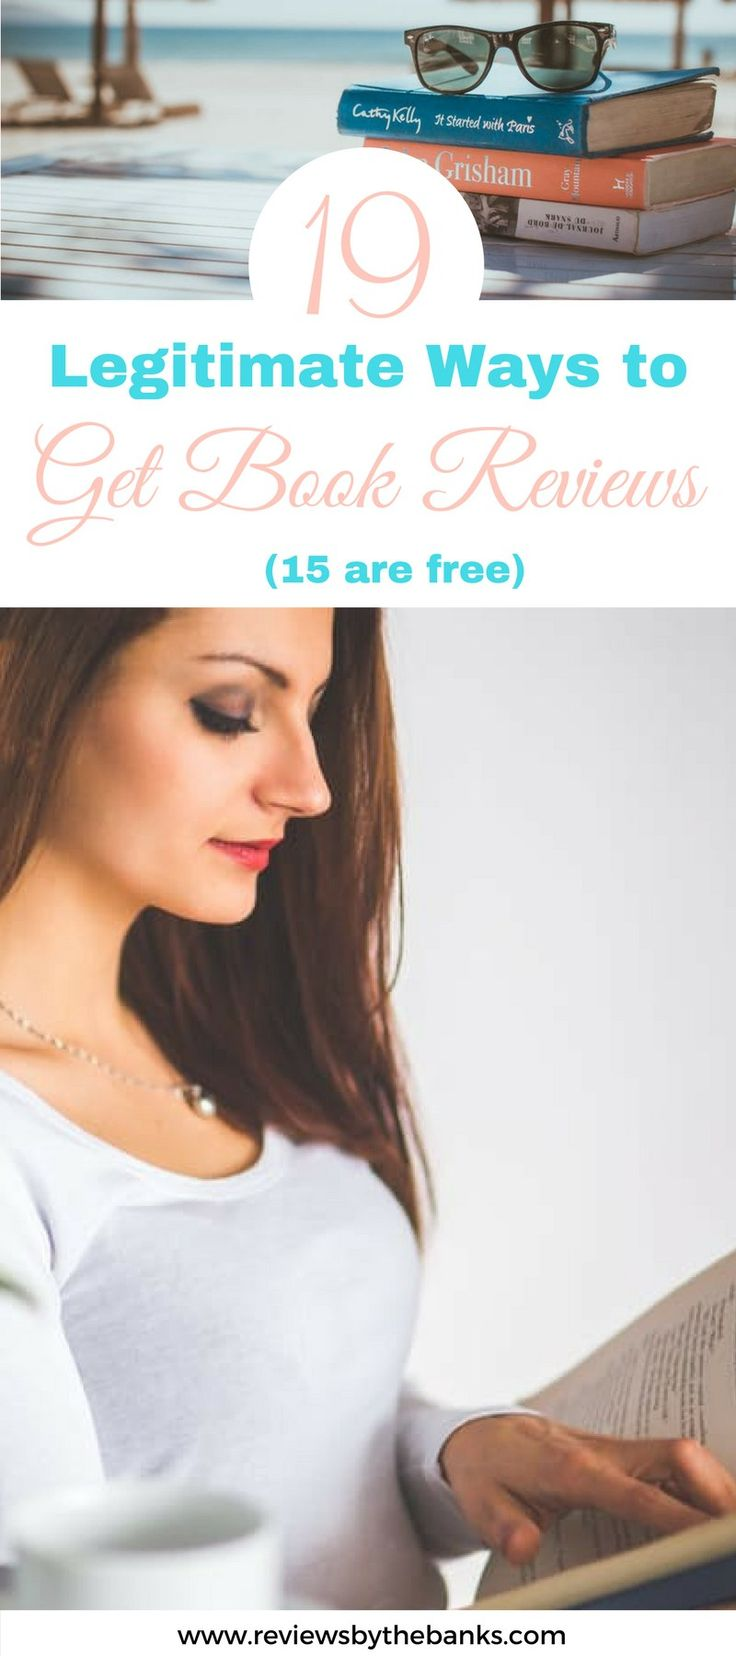 If you ever wondered how to get book reviews, this article provides you 19 places to find them. Among the review sources, 15 of them are free.